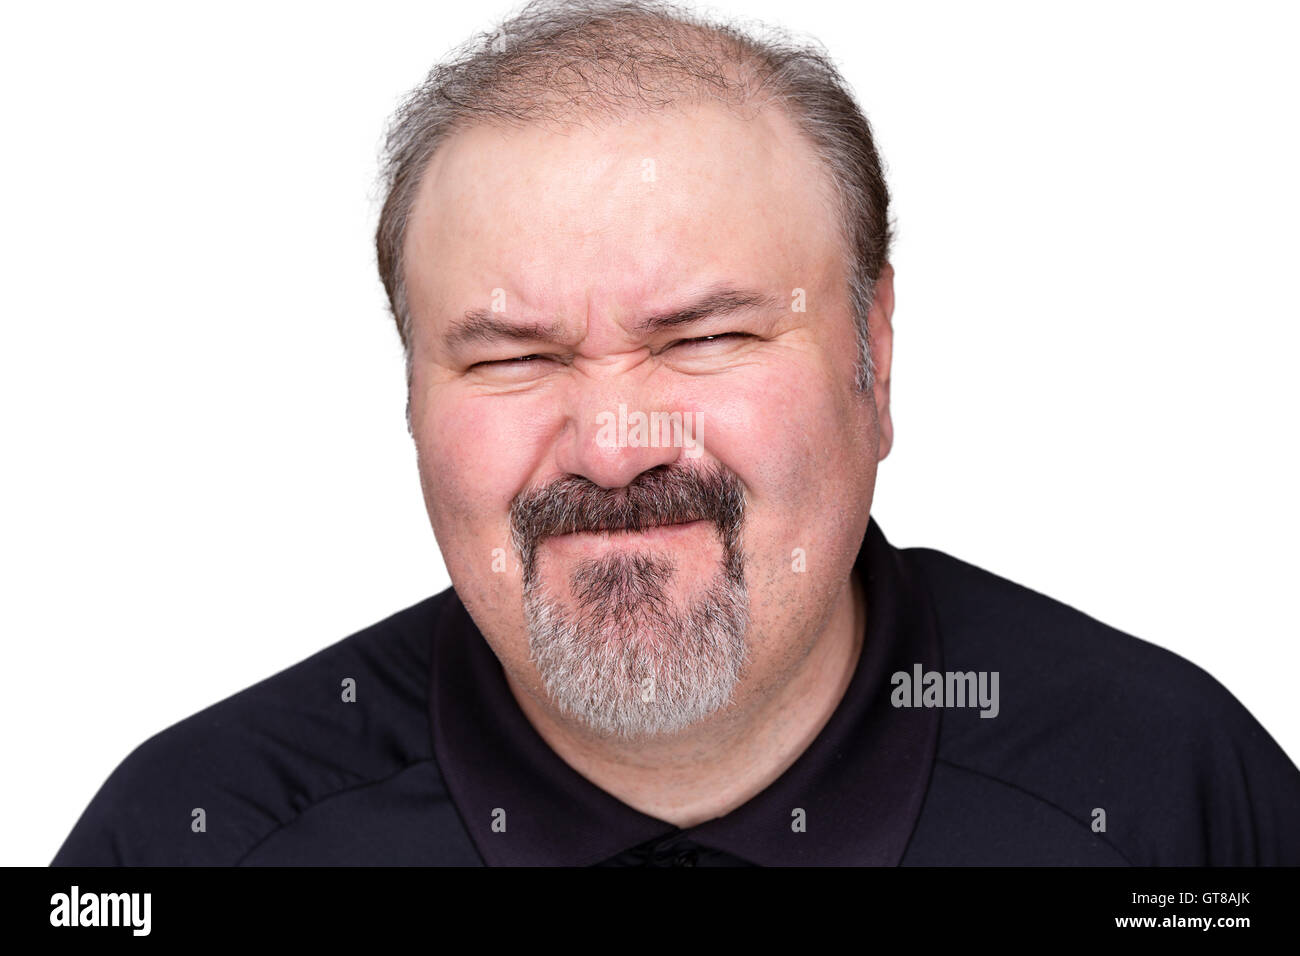 Disgusted unimpressed middle-aged man pulling a disdainful expression , head and shoulders isolated on white - Stock Image